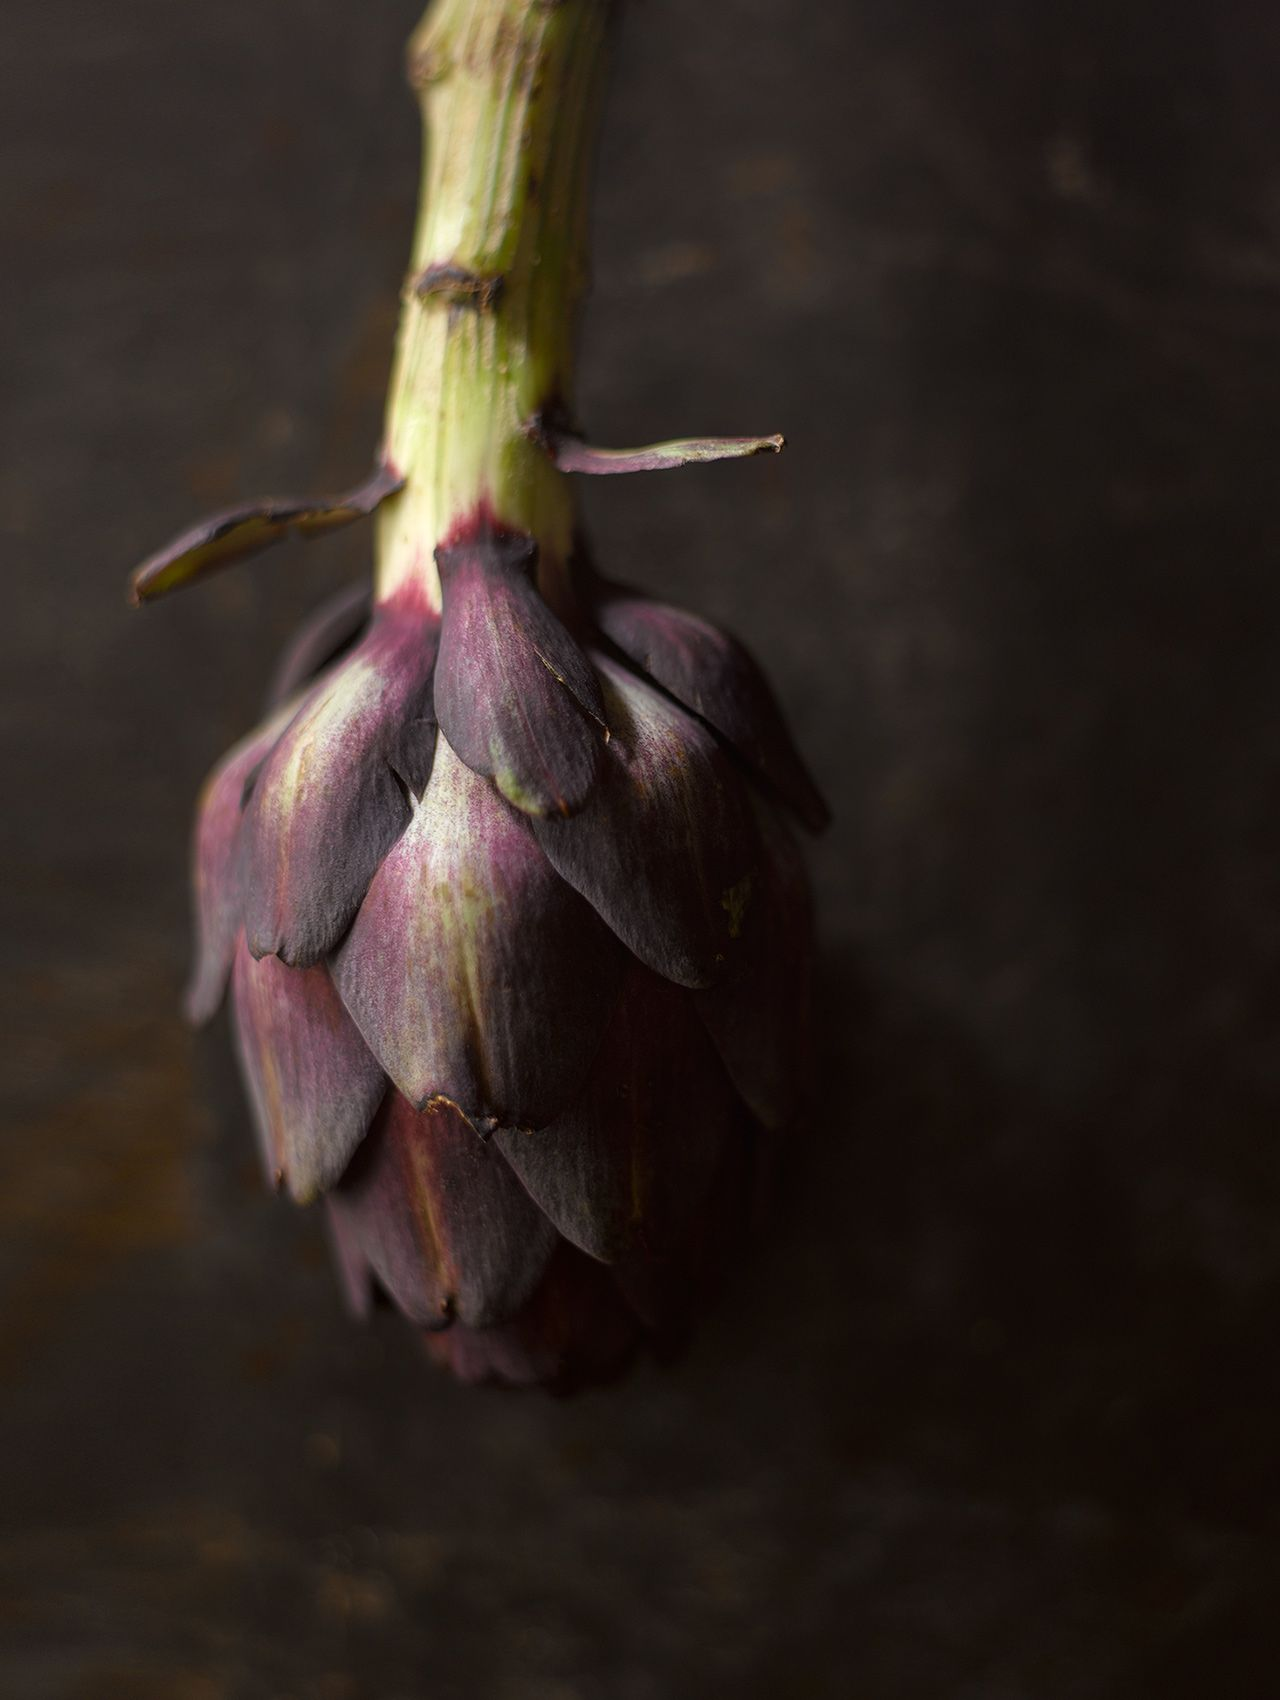 Purple Artichoke Still Life